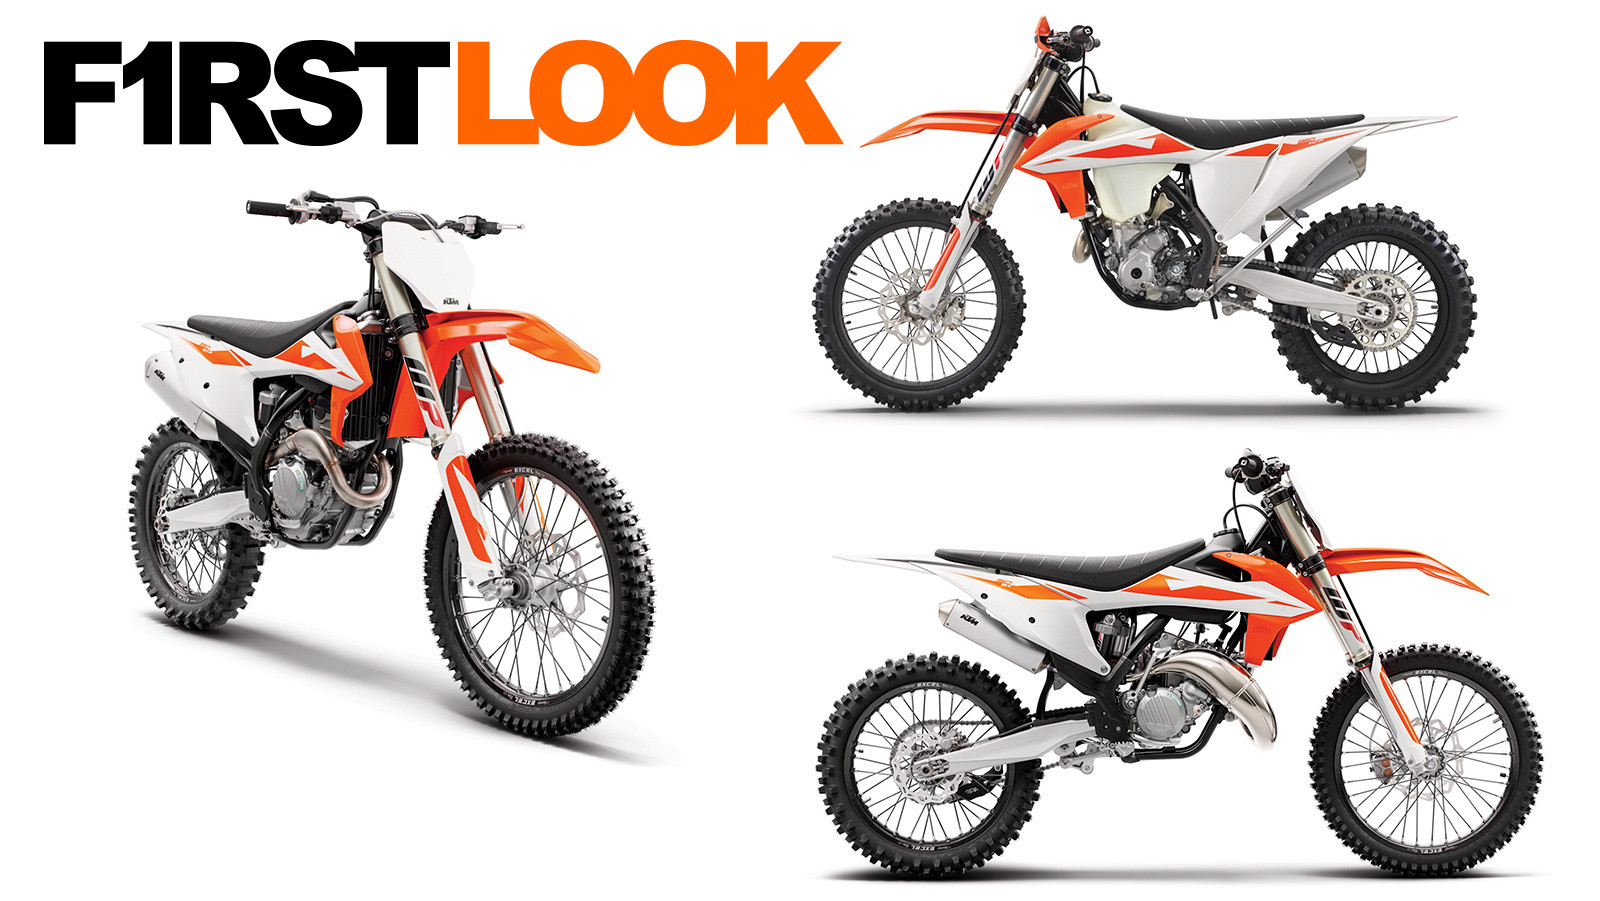 First look 2019 ktm motocross and cross country models motocross first look 2019 ktm motocross and cross country models ccuart Gallery